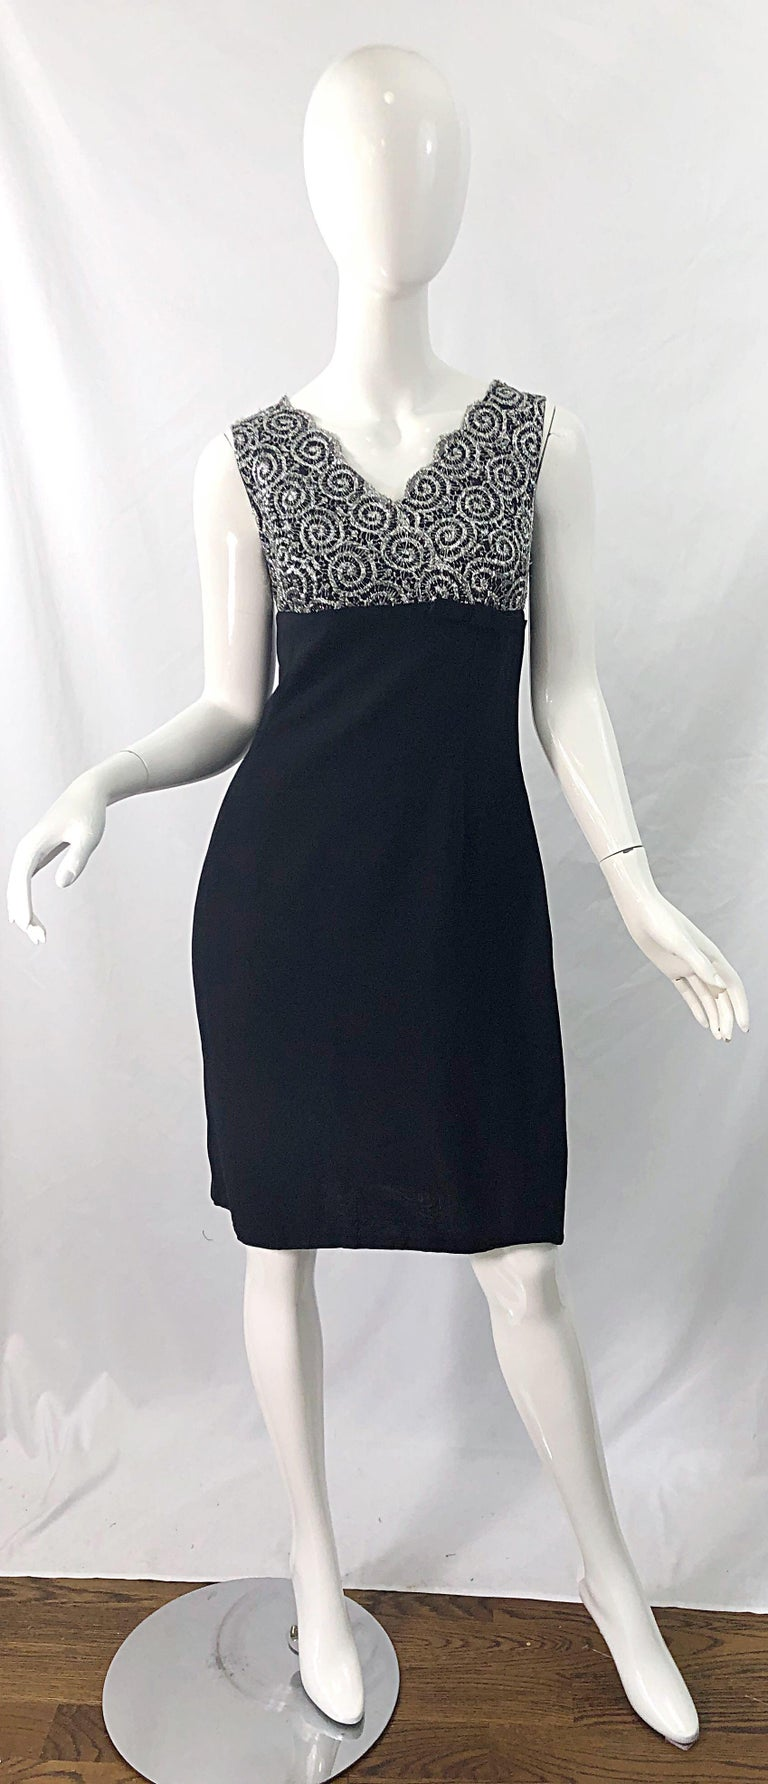 Chic 1960s black rayon crepe and silver metallic lace vintage sheath dress ! Features an empire style waist with bow at side left waist. Swag detail at center back. Full metal zipper up the back with hook-and-eye closure. The perfect little black